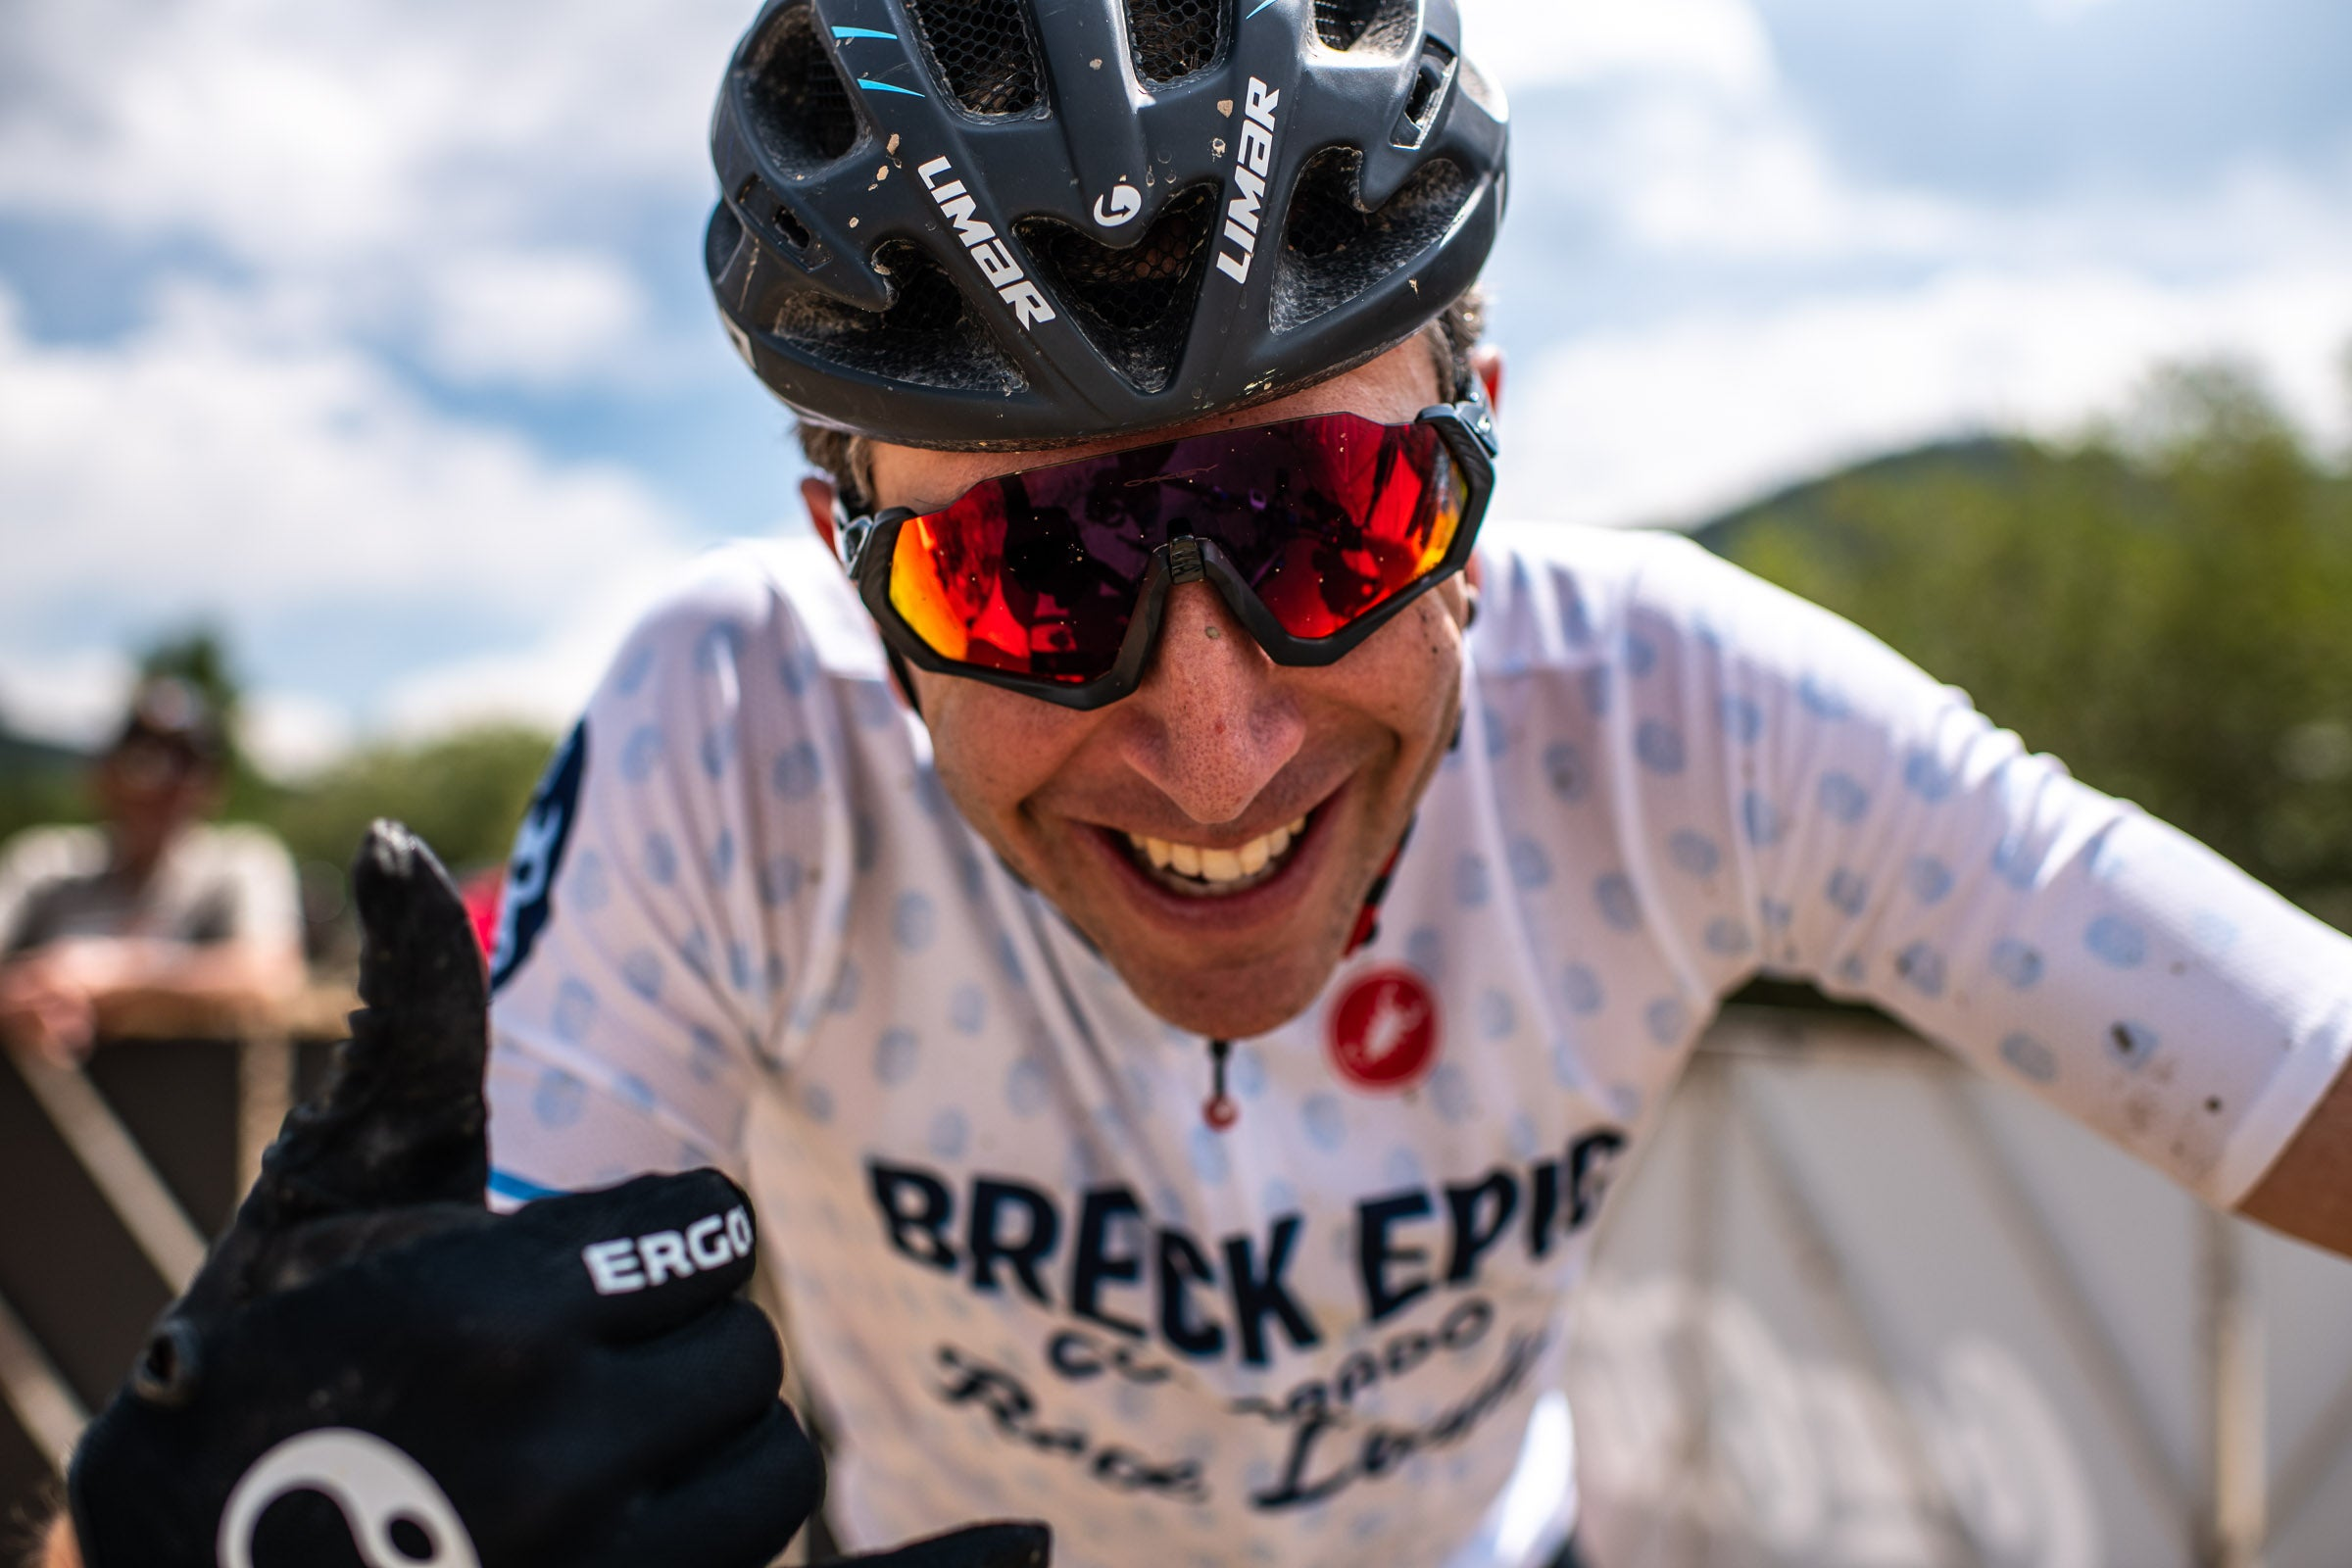 Breck Epic Basics: Nutrition for the long haul